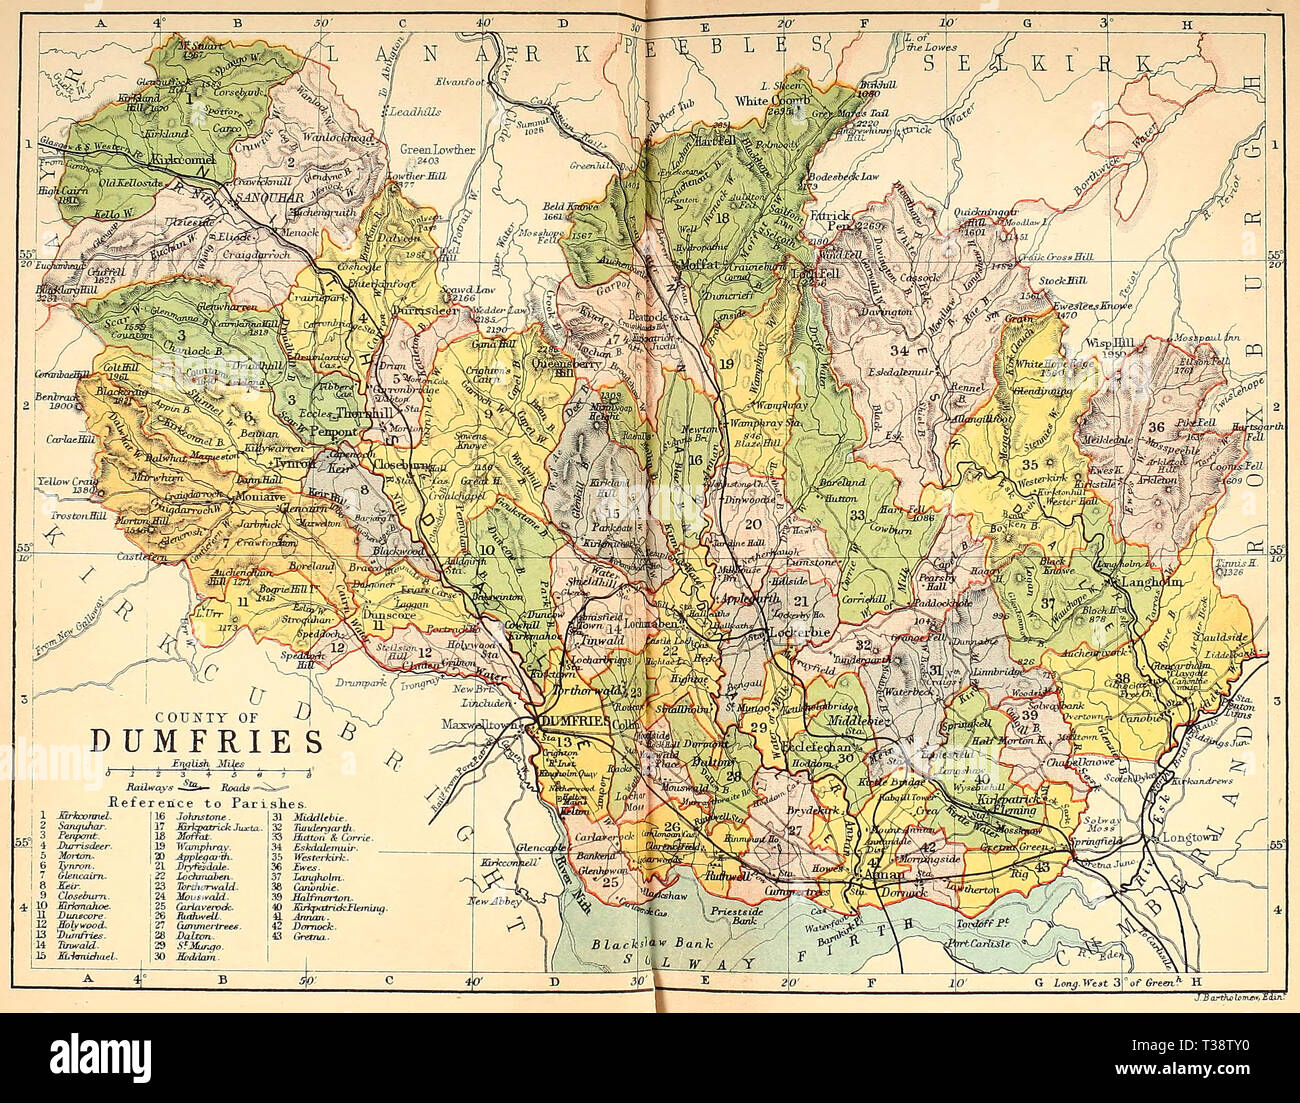 Map of the County of Dumfries, Scotland, circa 1882 - Stock Image